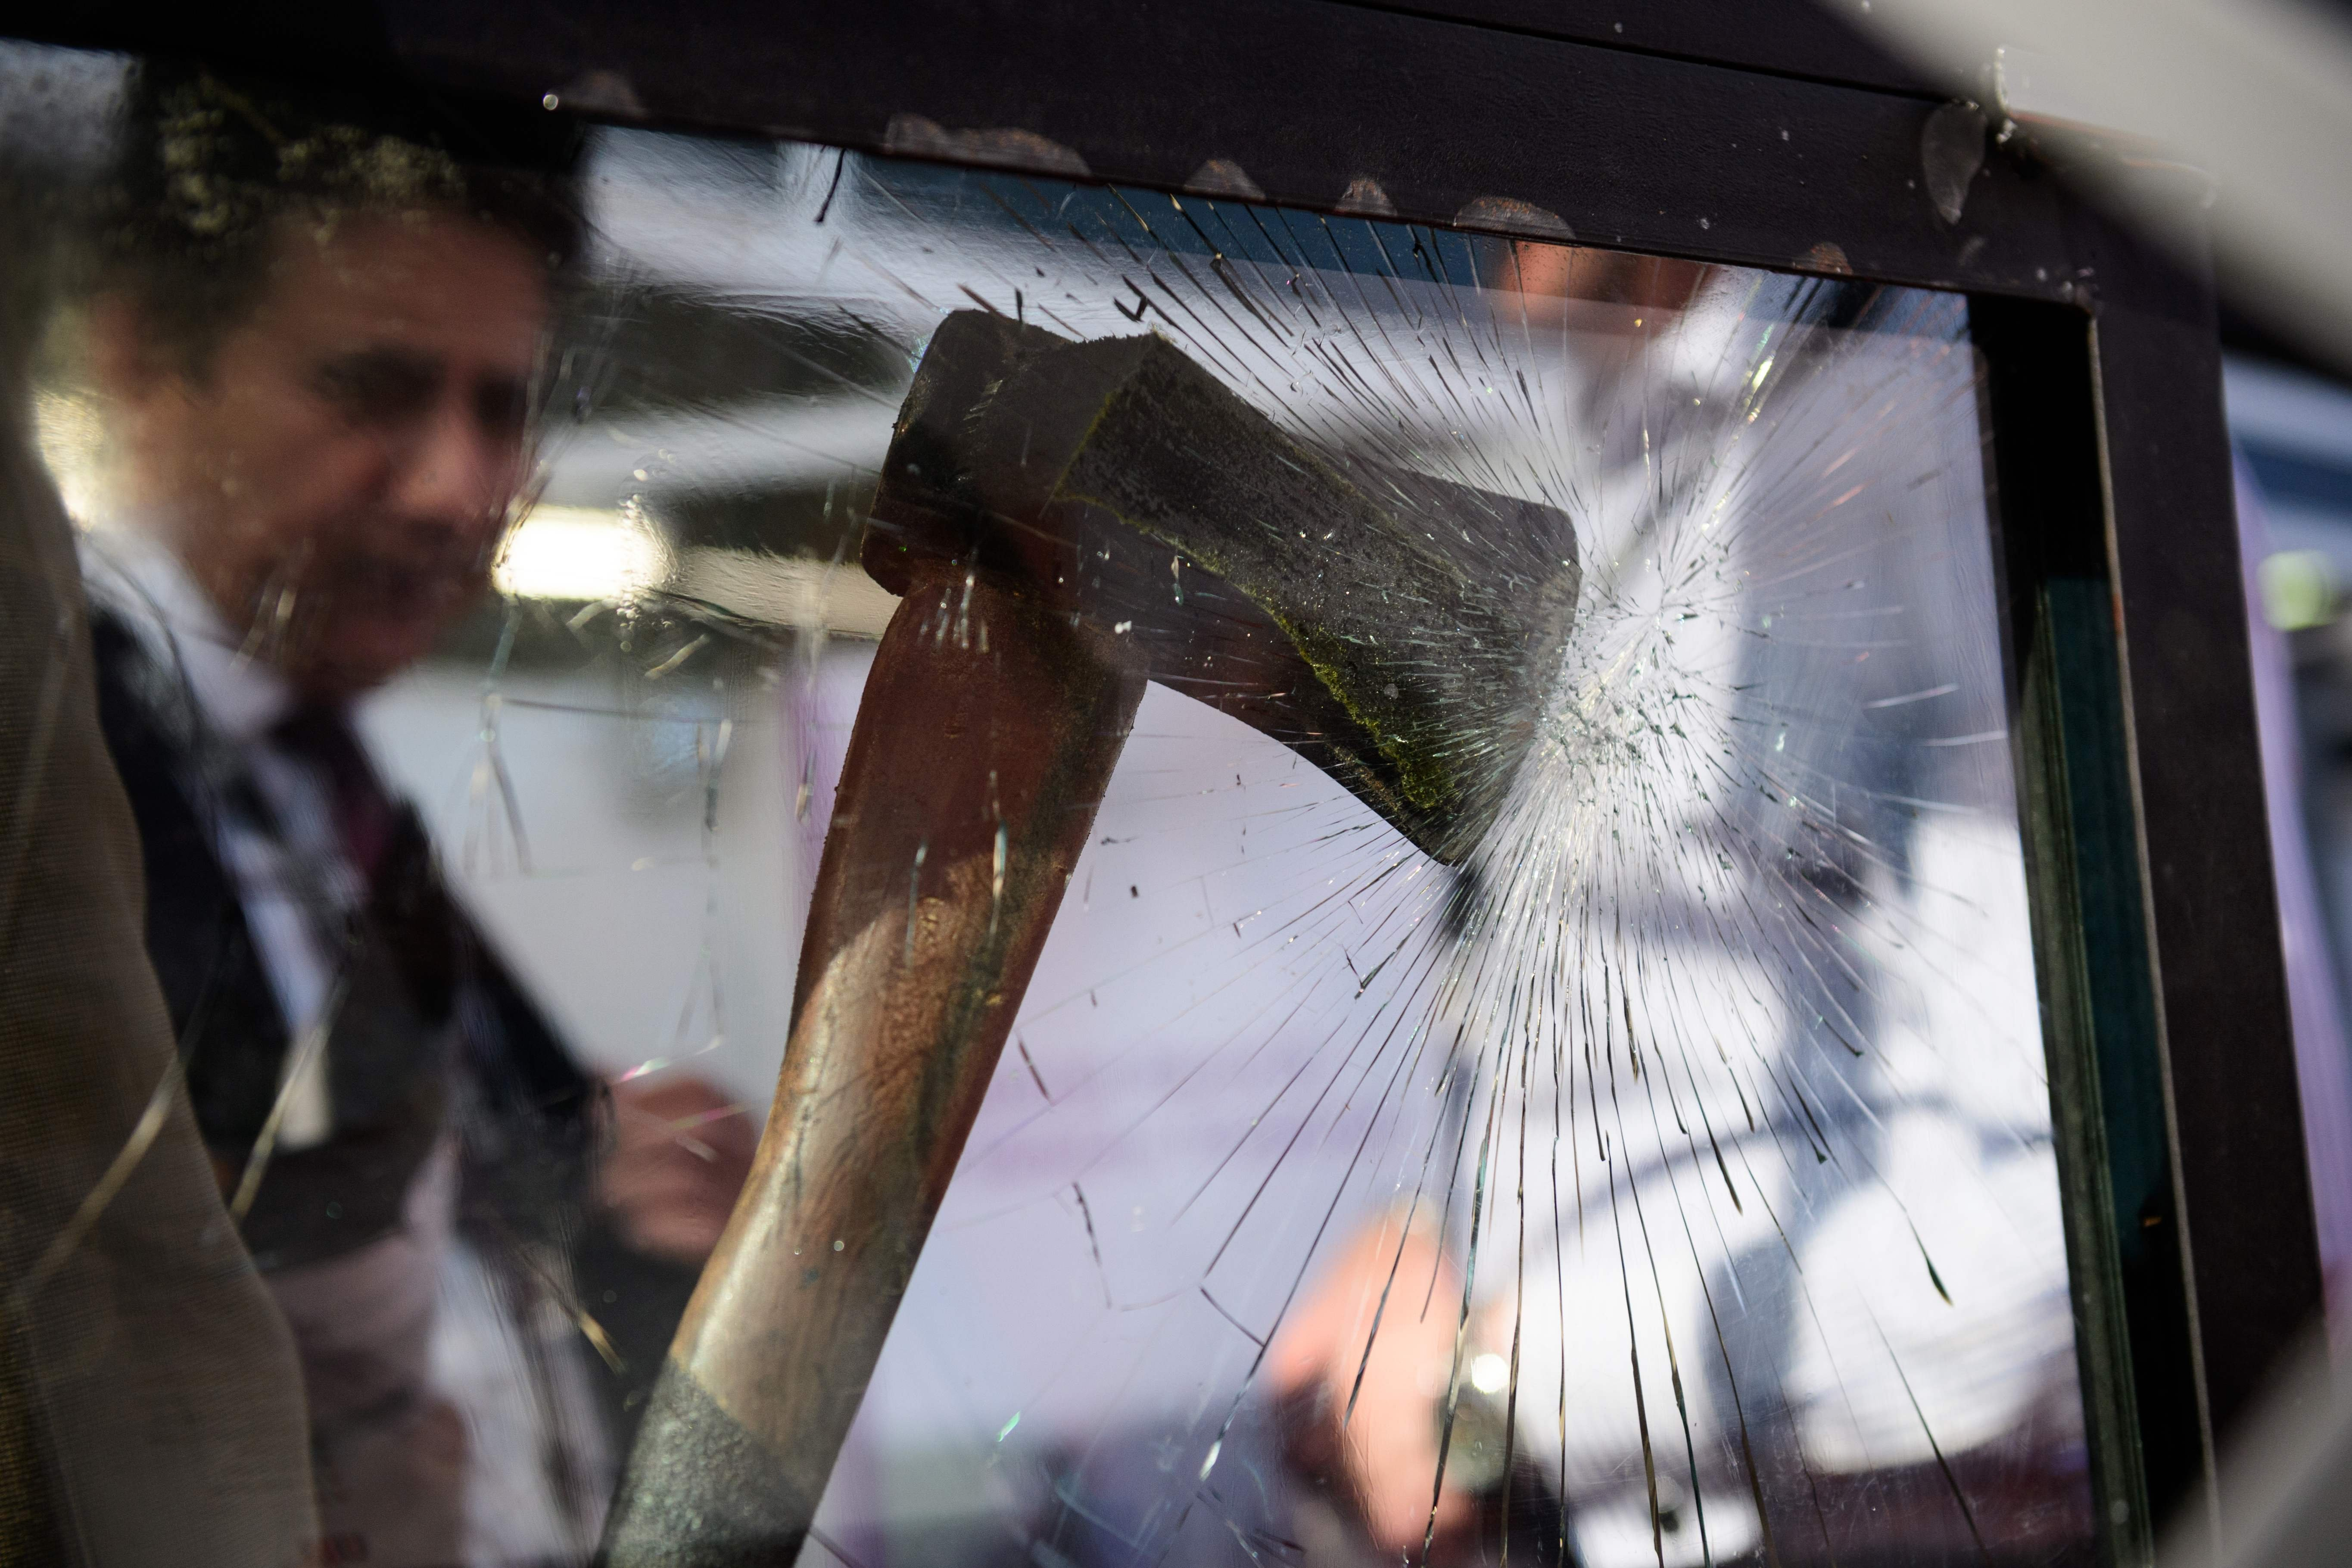 An axe and the effect it has on ballistic glass is displayed during the  Security and Counter Terror Expo  at the Olympia centre in west London on April 19, 2016.